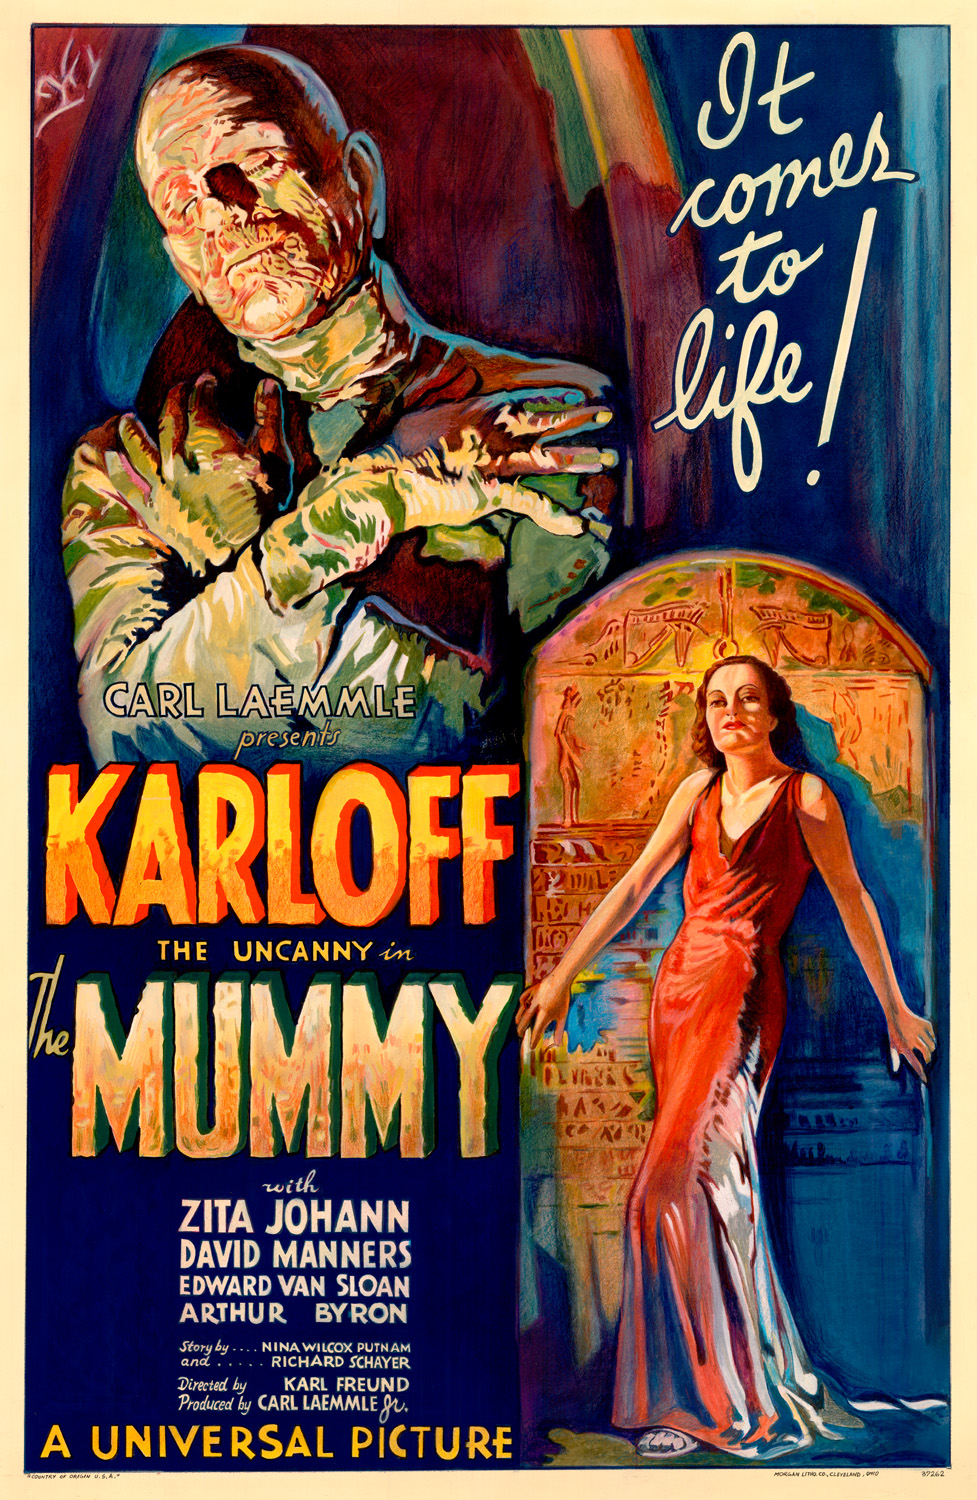 """""""The Mummy 1932 Film Poster"""" –Universal Pictures, attributed to Karoly Grosz.This movie poster is more like half warm and half cool, but notice in particular the woman in the lower right who is bathed in warm light and stands against a cool shadow. (Licensed under Public Domain via Wikimedia Commons)"""